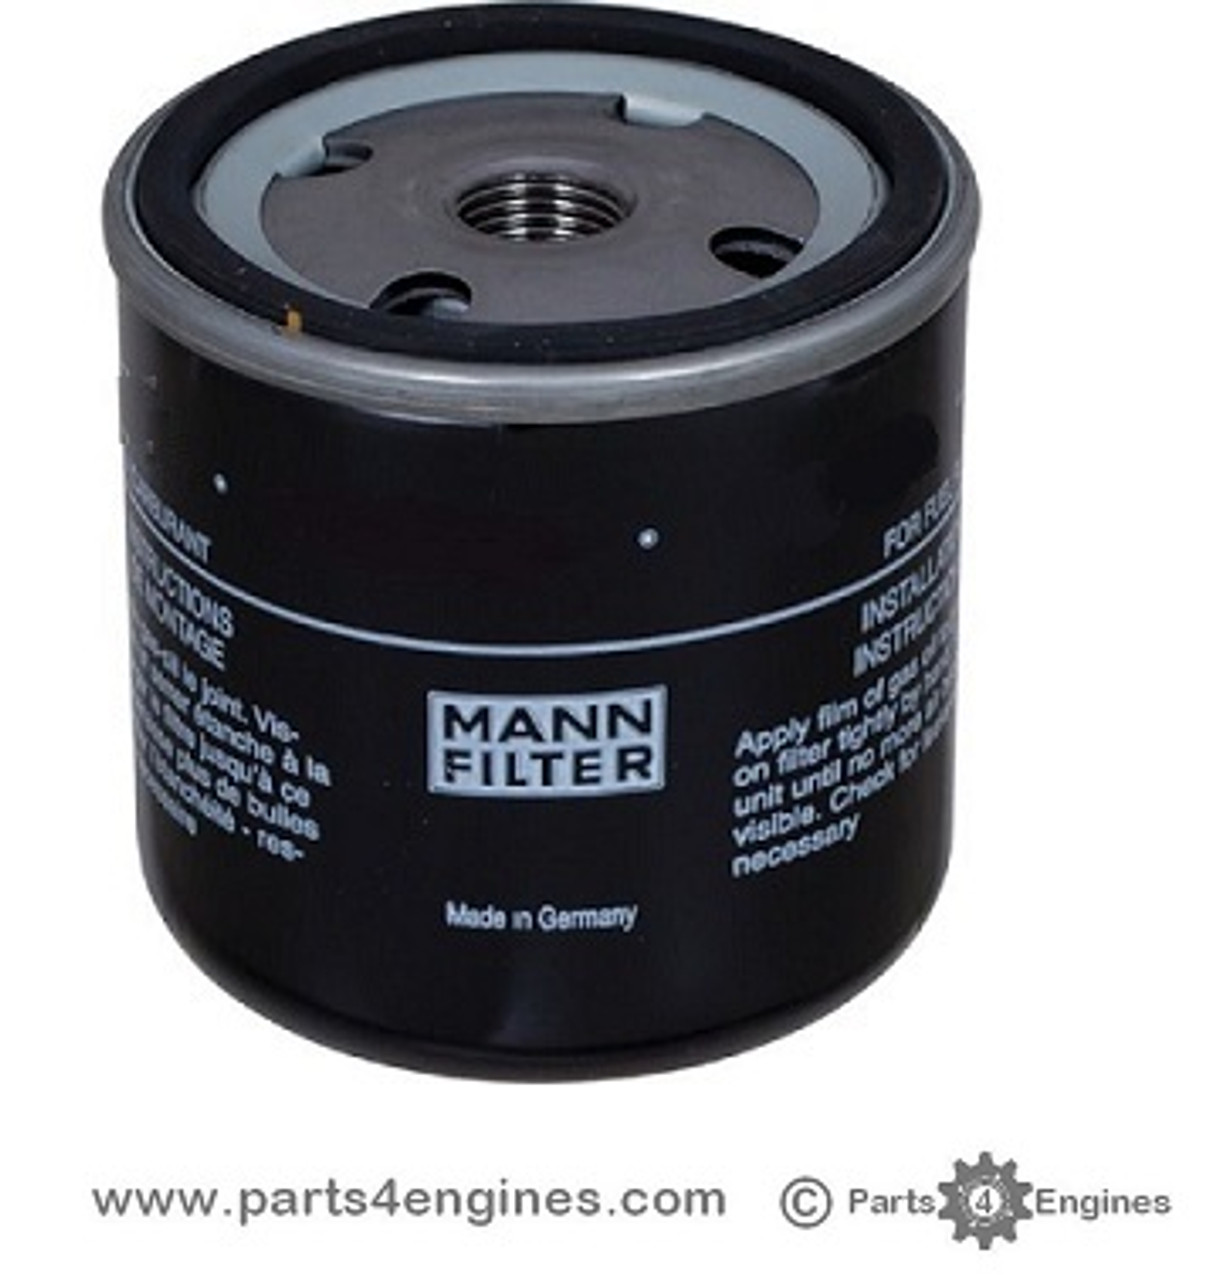 Volvo Penta 2002 fuel filter from Parts4engines.com